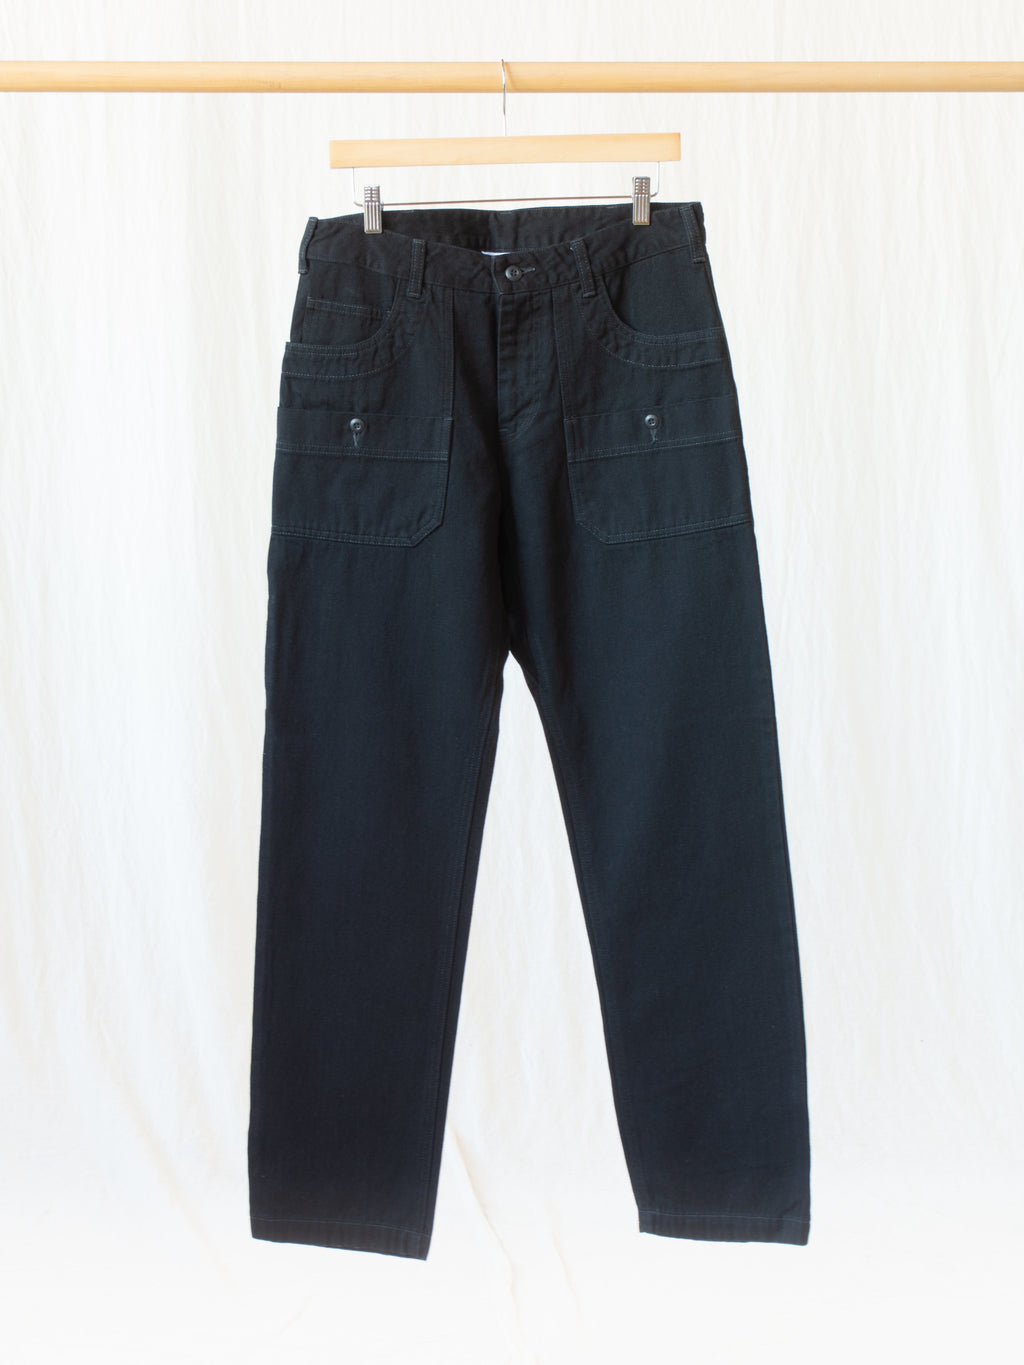 Namu Shop - Fujito Explorer Pants - Black